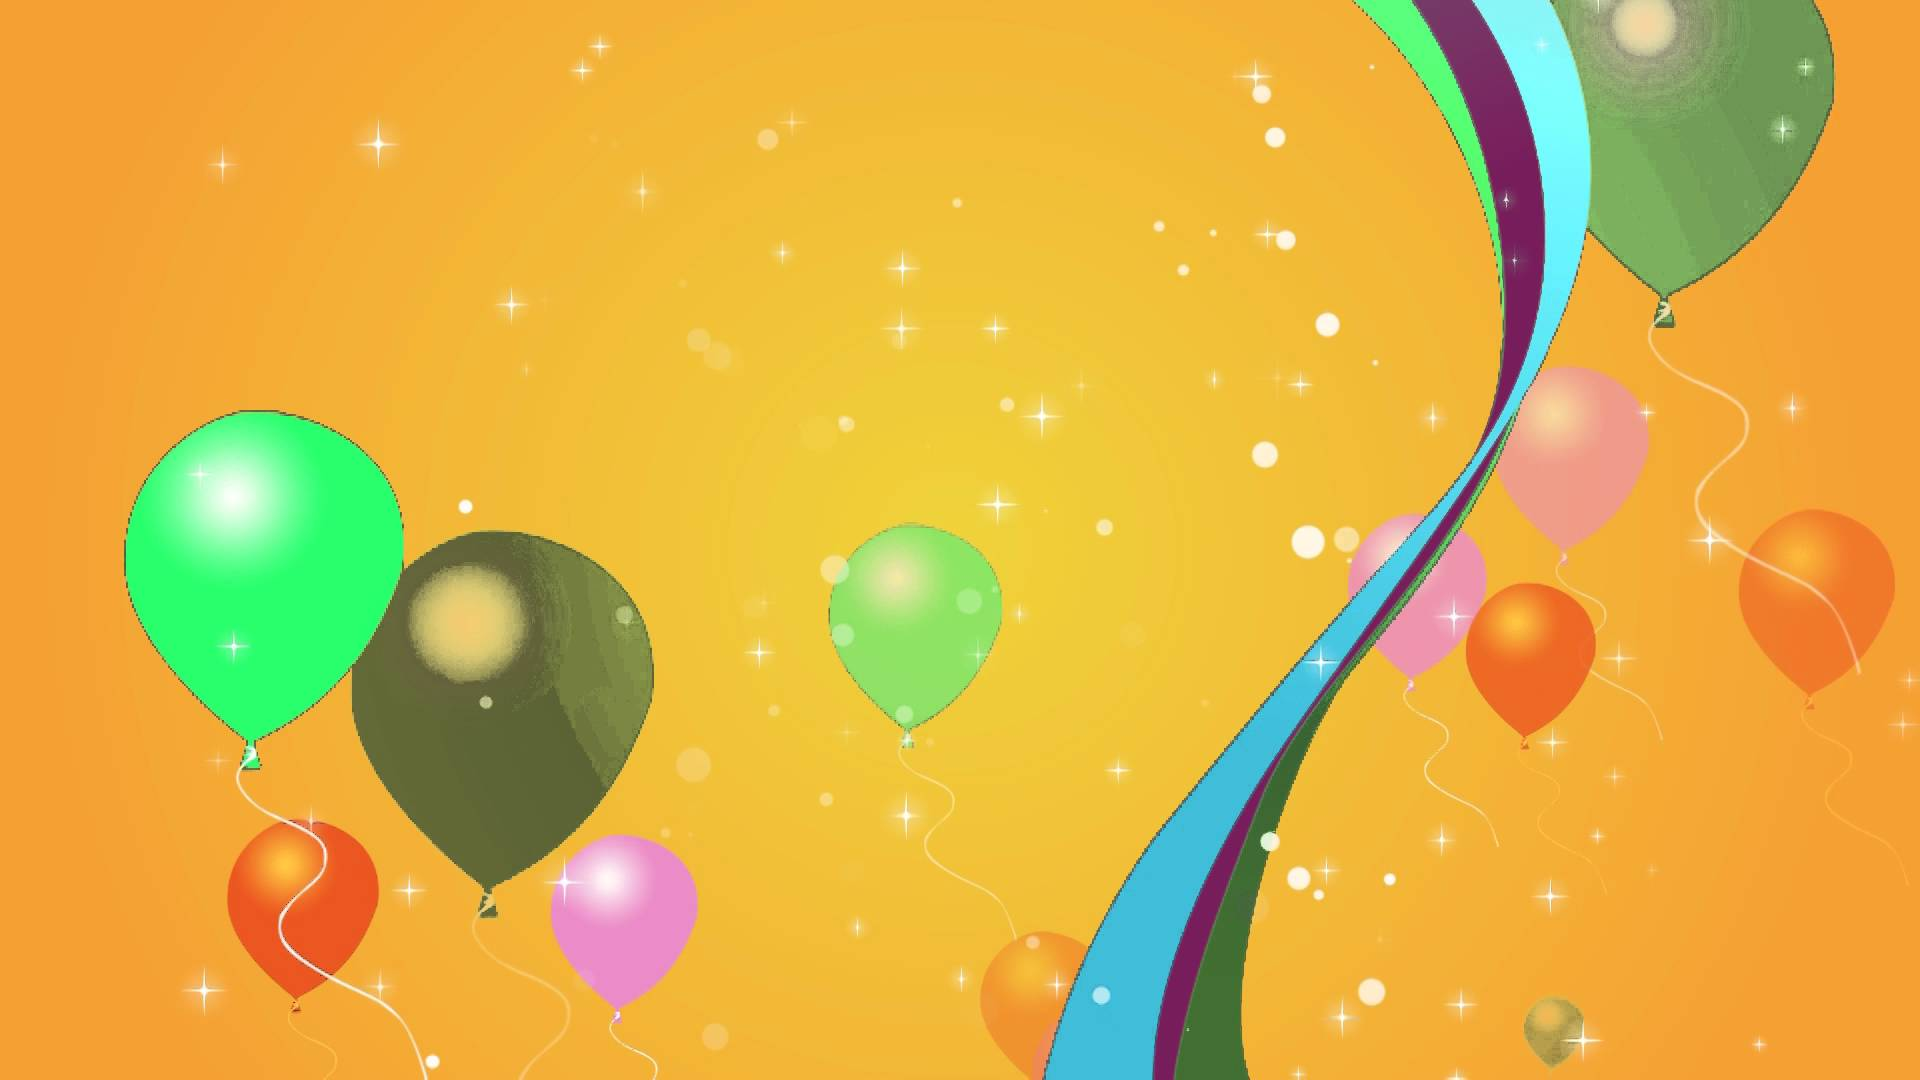 birthday background wallpapers hd ; birthday-balloons-background-wallpaper-hd-4